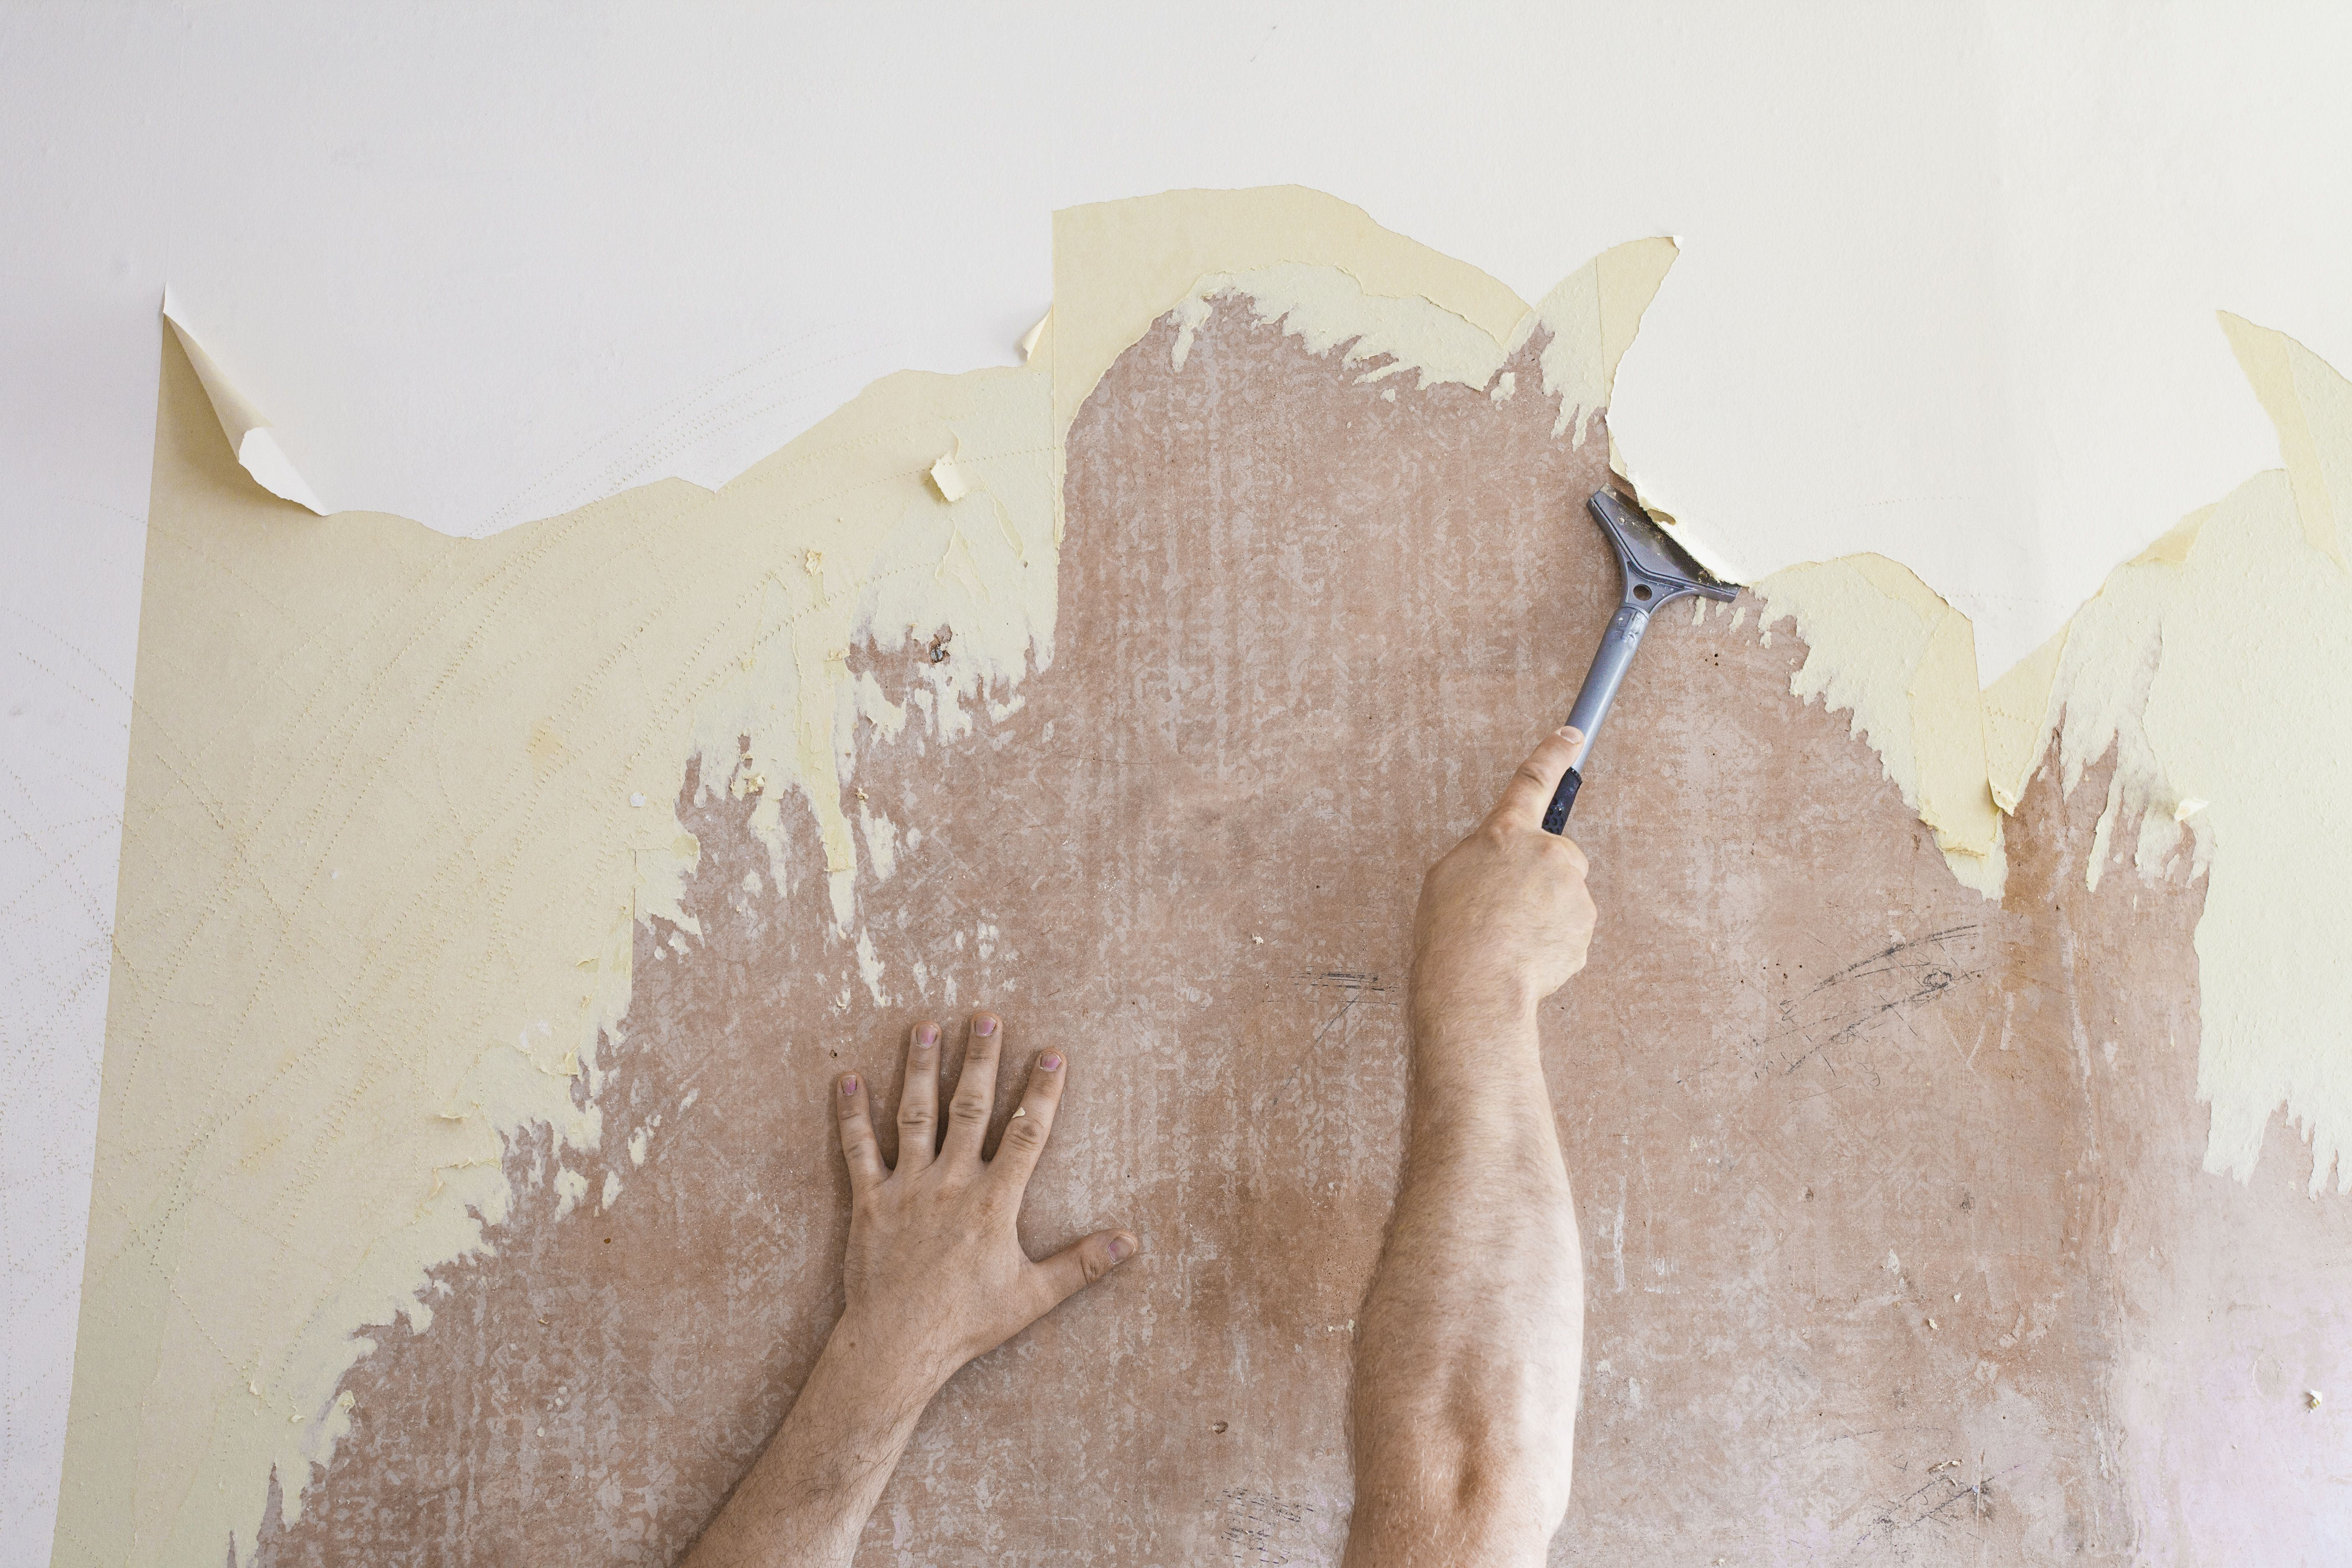 How to Remove Wallpaper Frugally